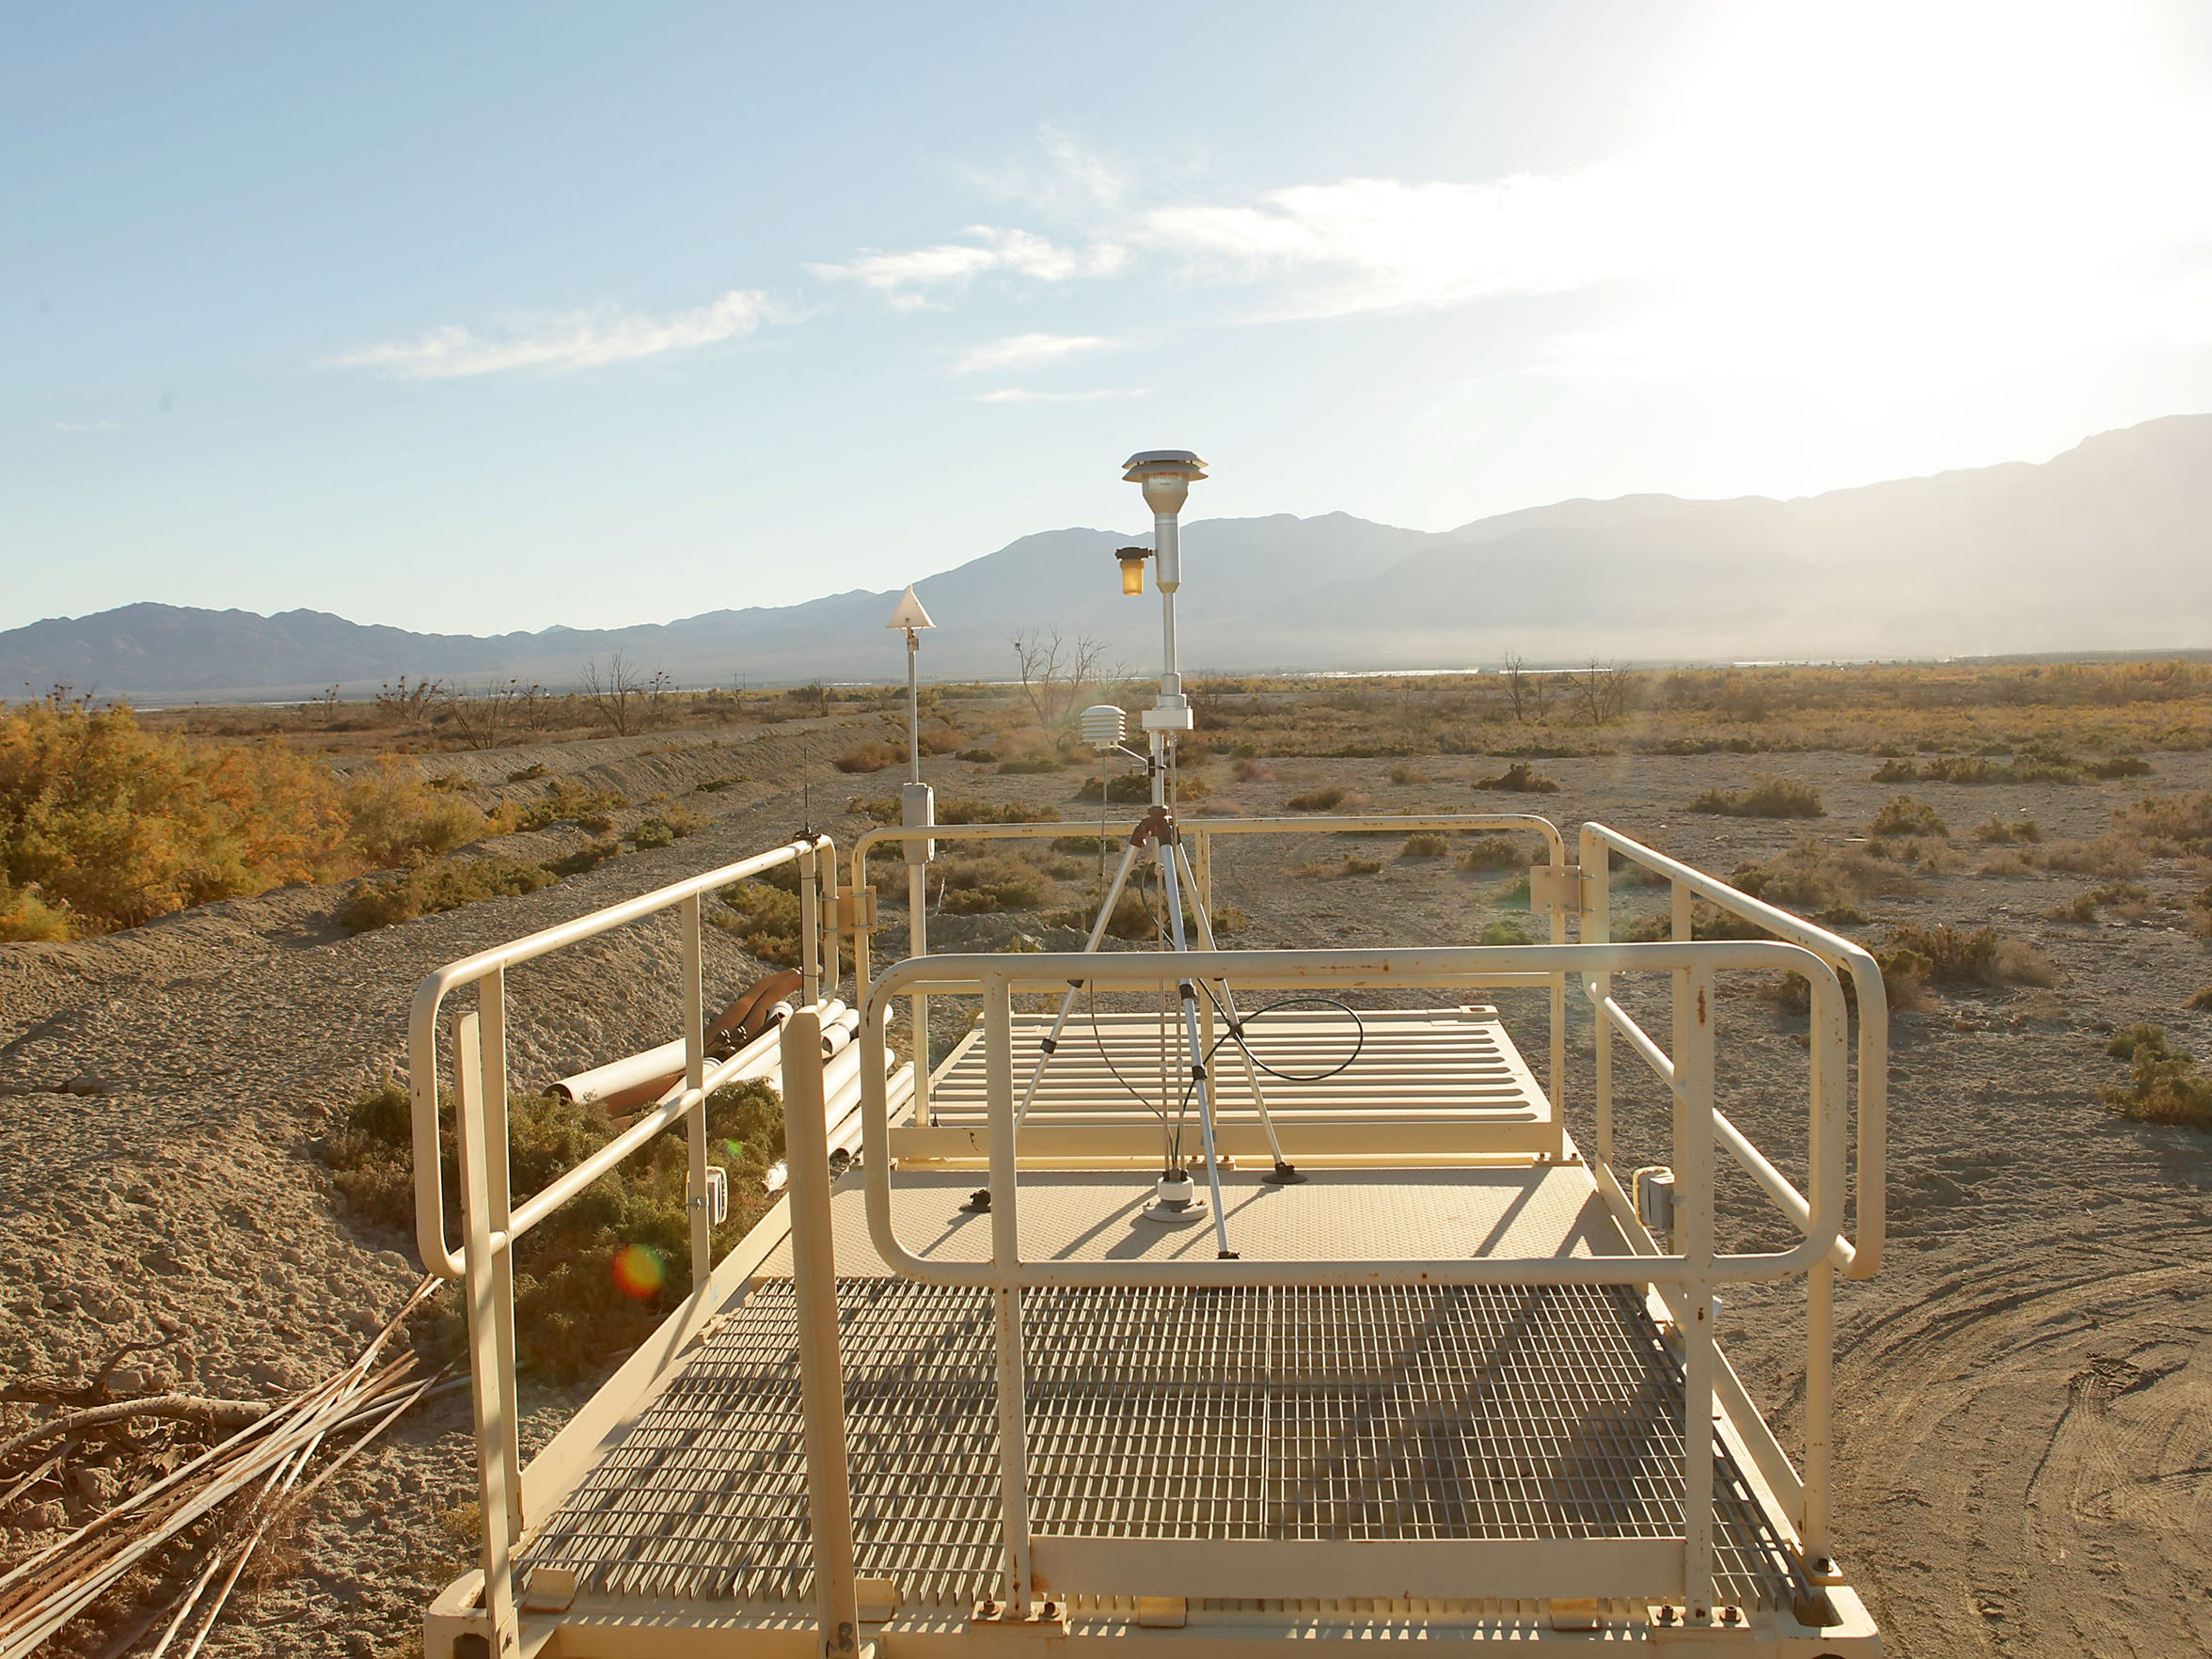 A monitoring station measures dust and weather conditions near the northern shore of the Salton Sea, on Torres Martinez tribal land.